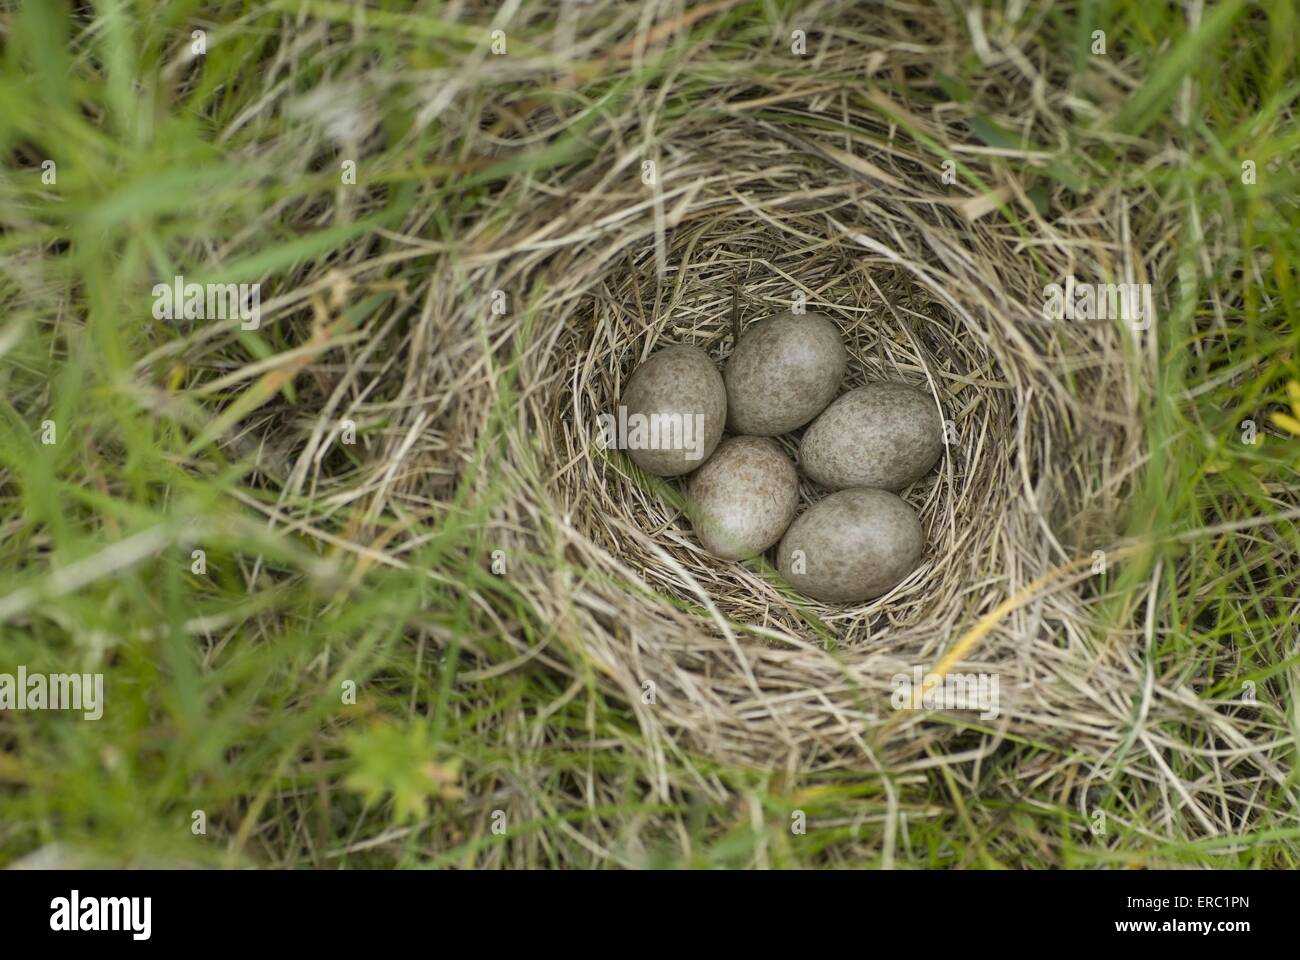 common skylark eggs - Stock Image